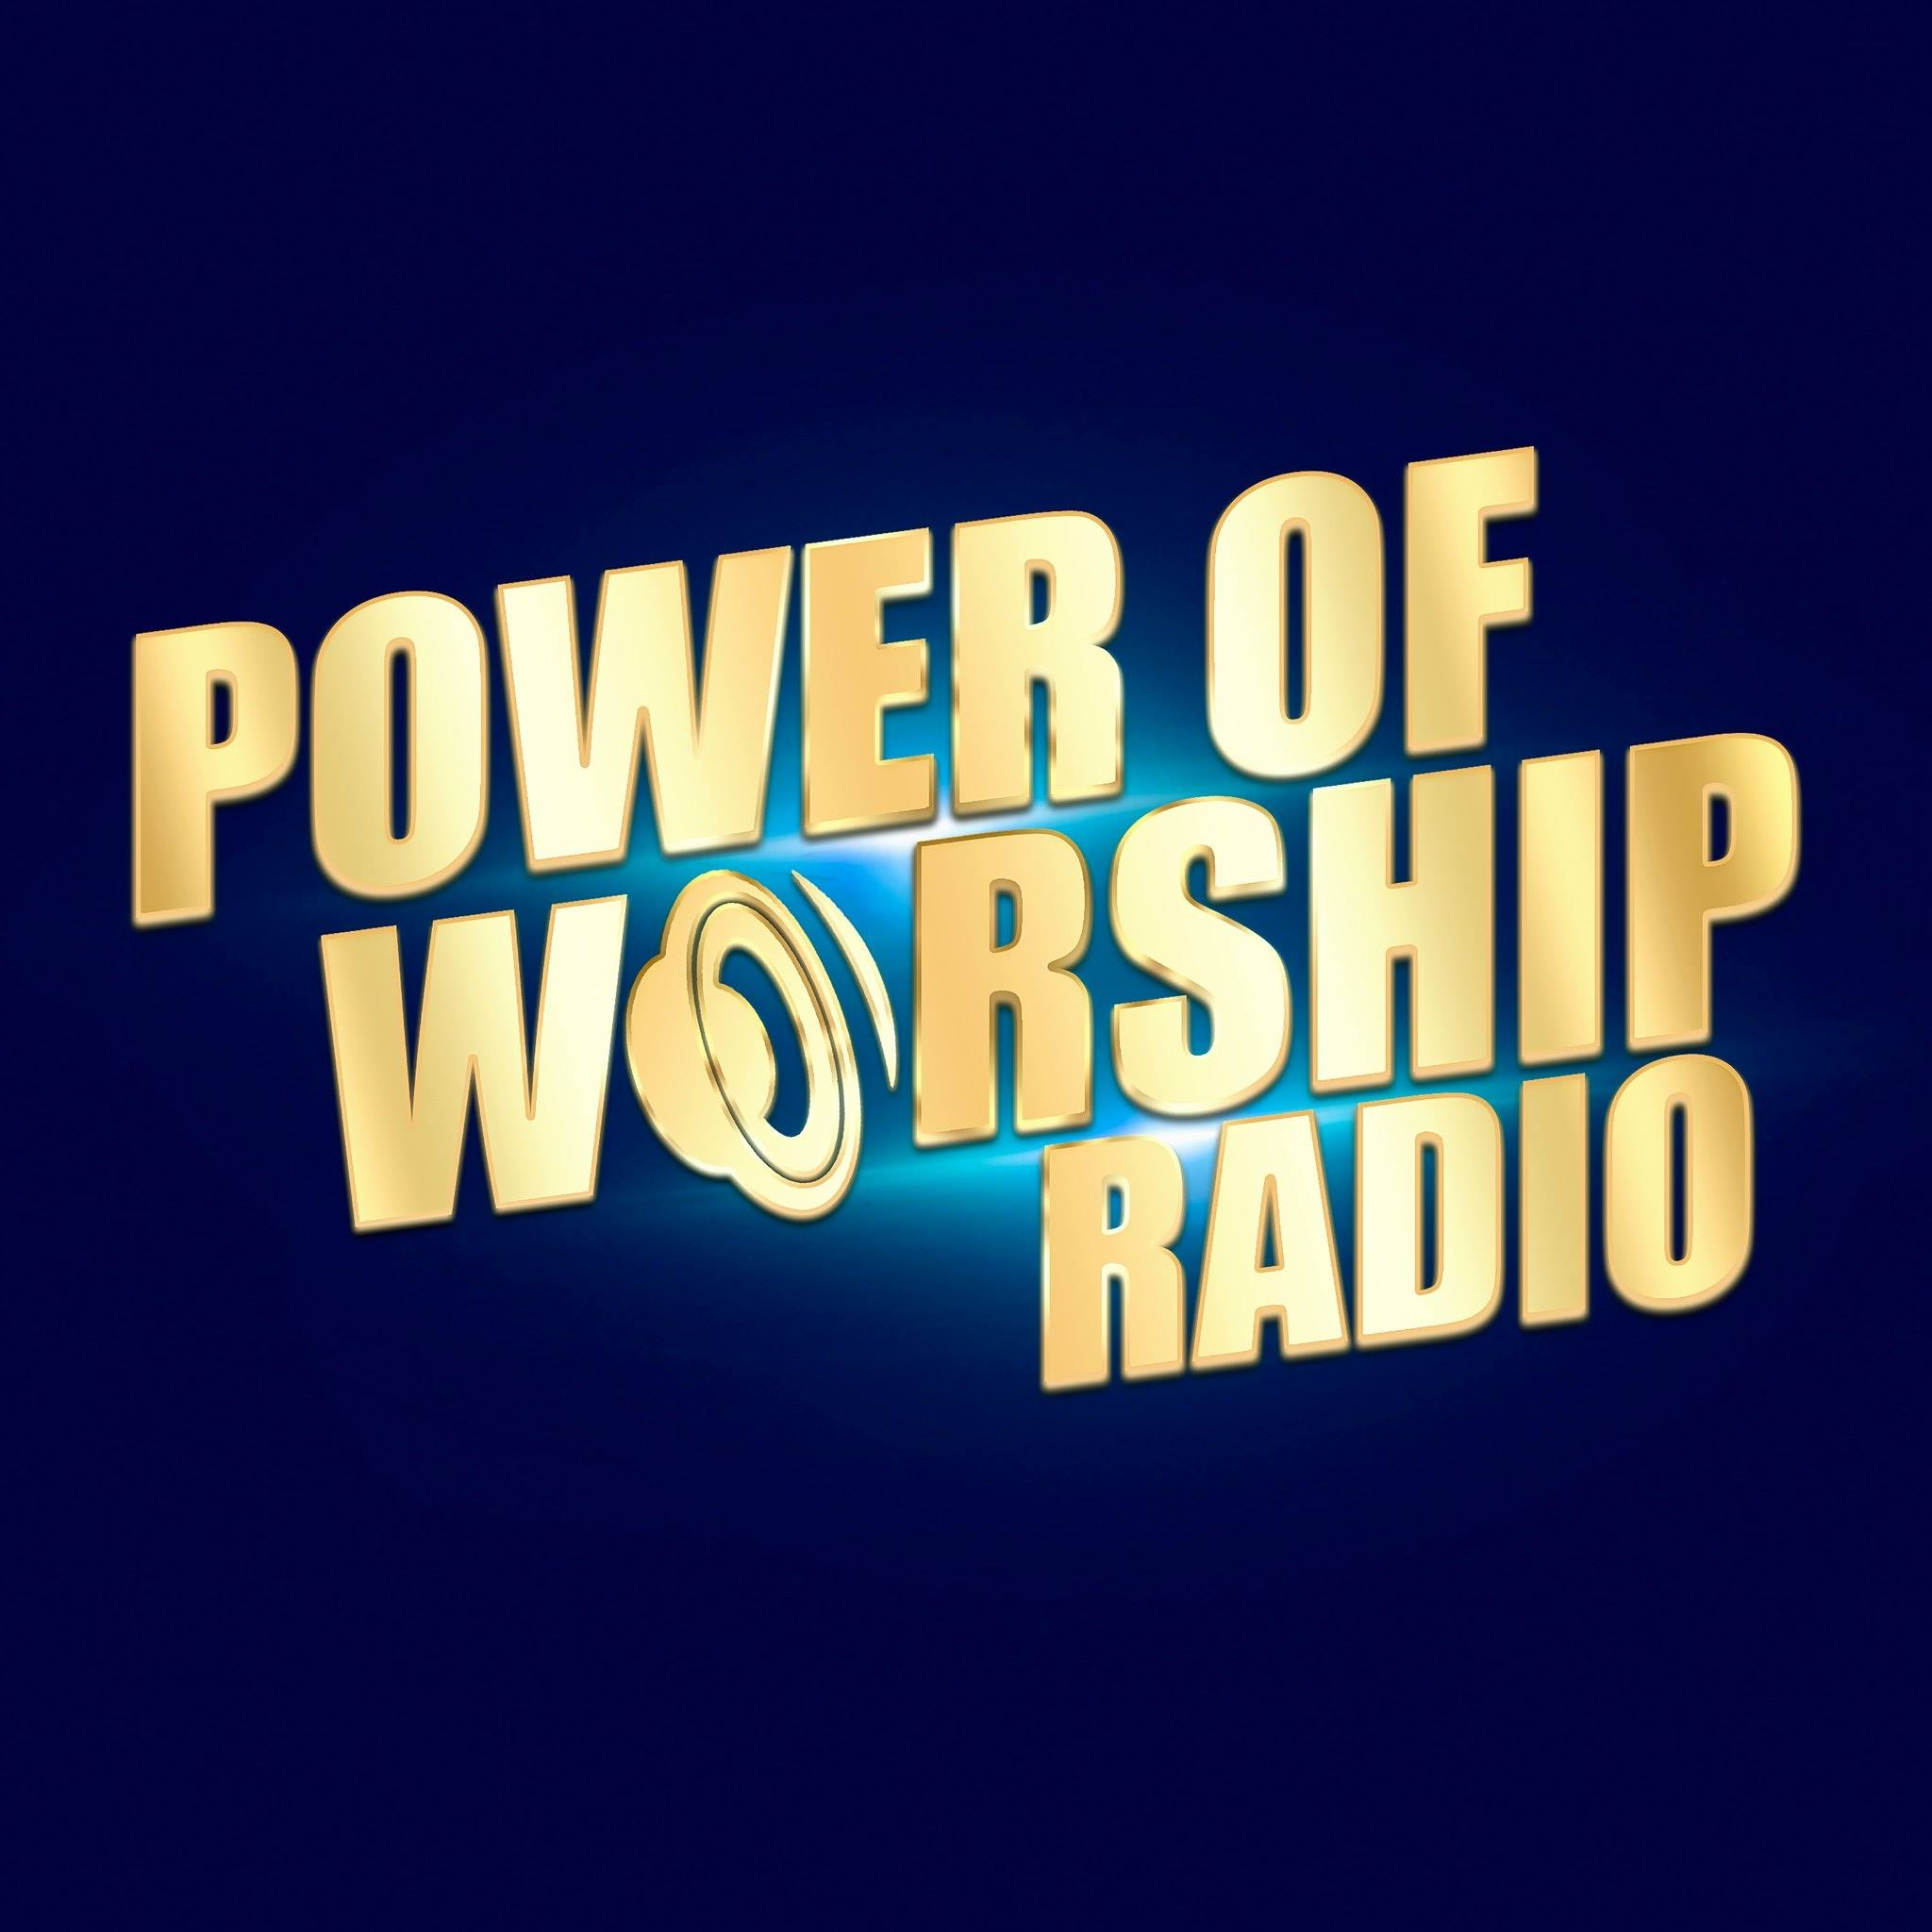 Радио Power of Worship Radio США, Нью-Йорк